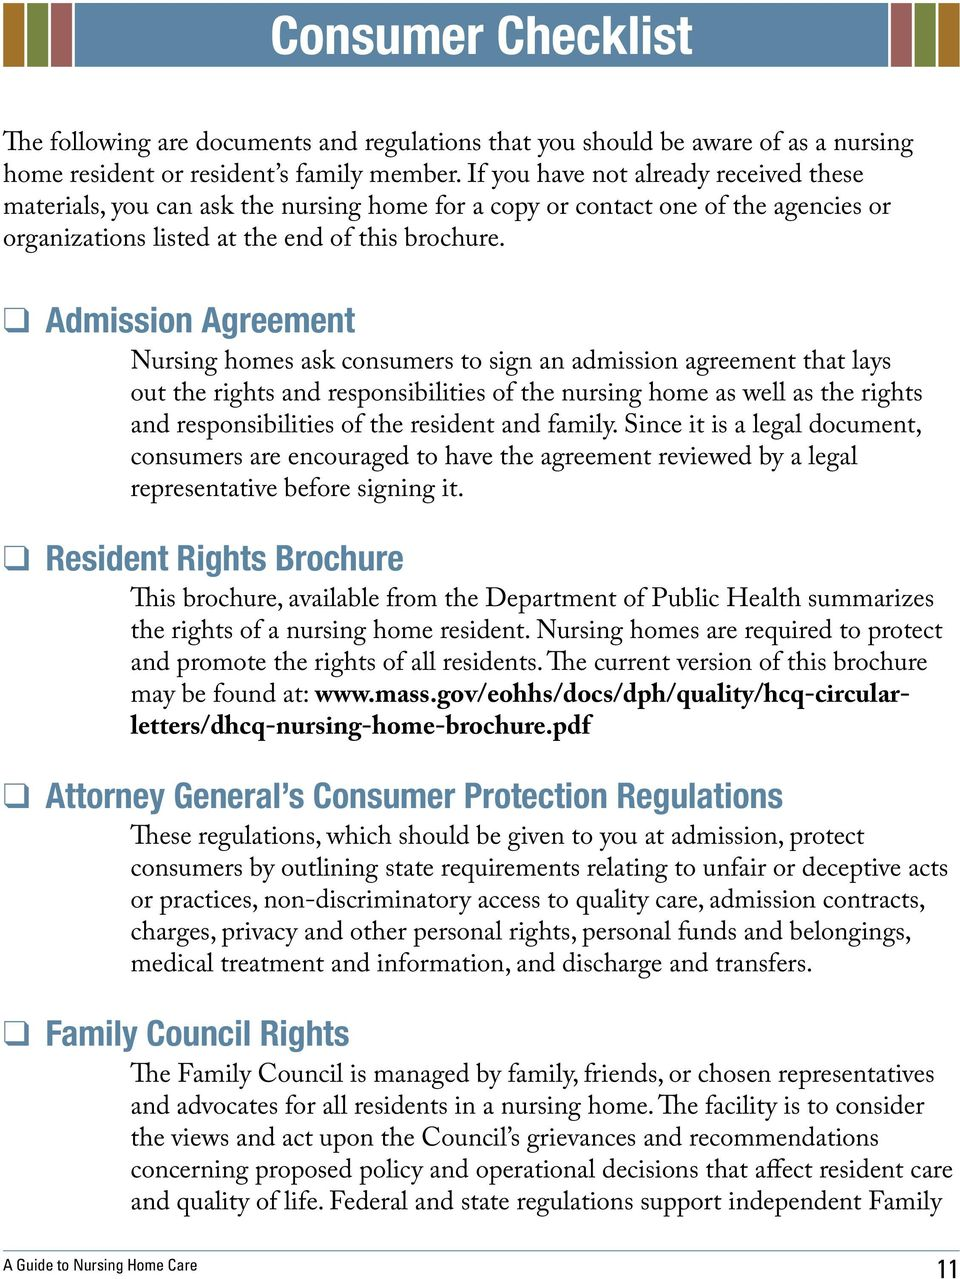 Admission Agreement Nursing homes ask consumers to sign an admission agreement that lays out the rights and responsibilities of the nursing home as well as the rights and responsibilities of the